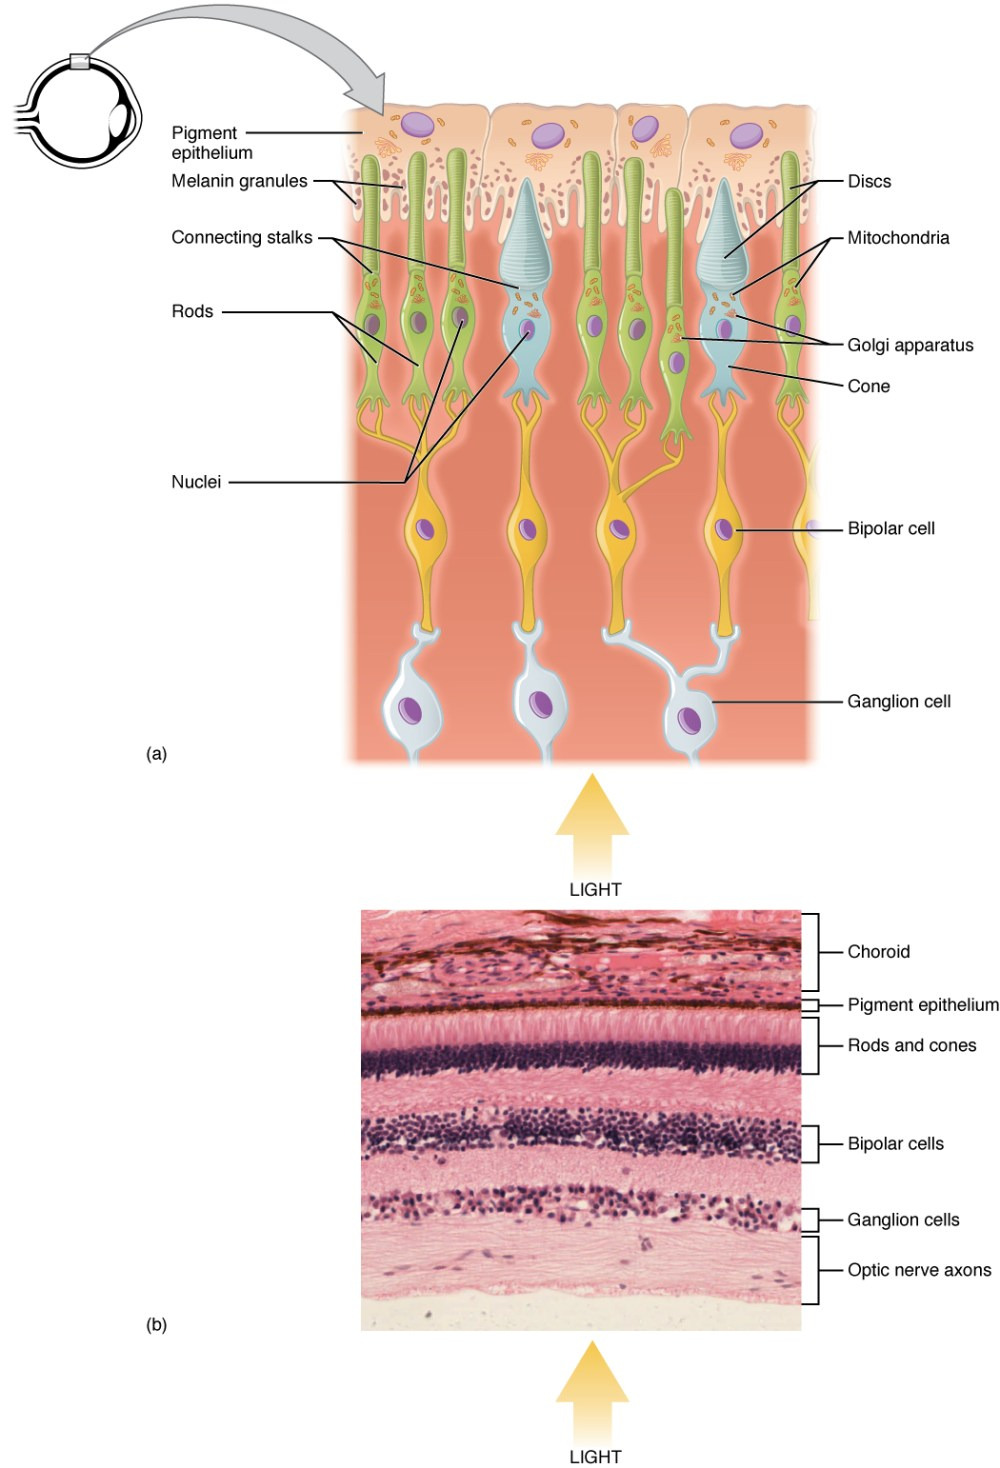 medium resolution of the top panel shows the cellular structure of the different cells in the eye the